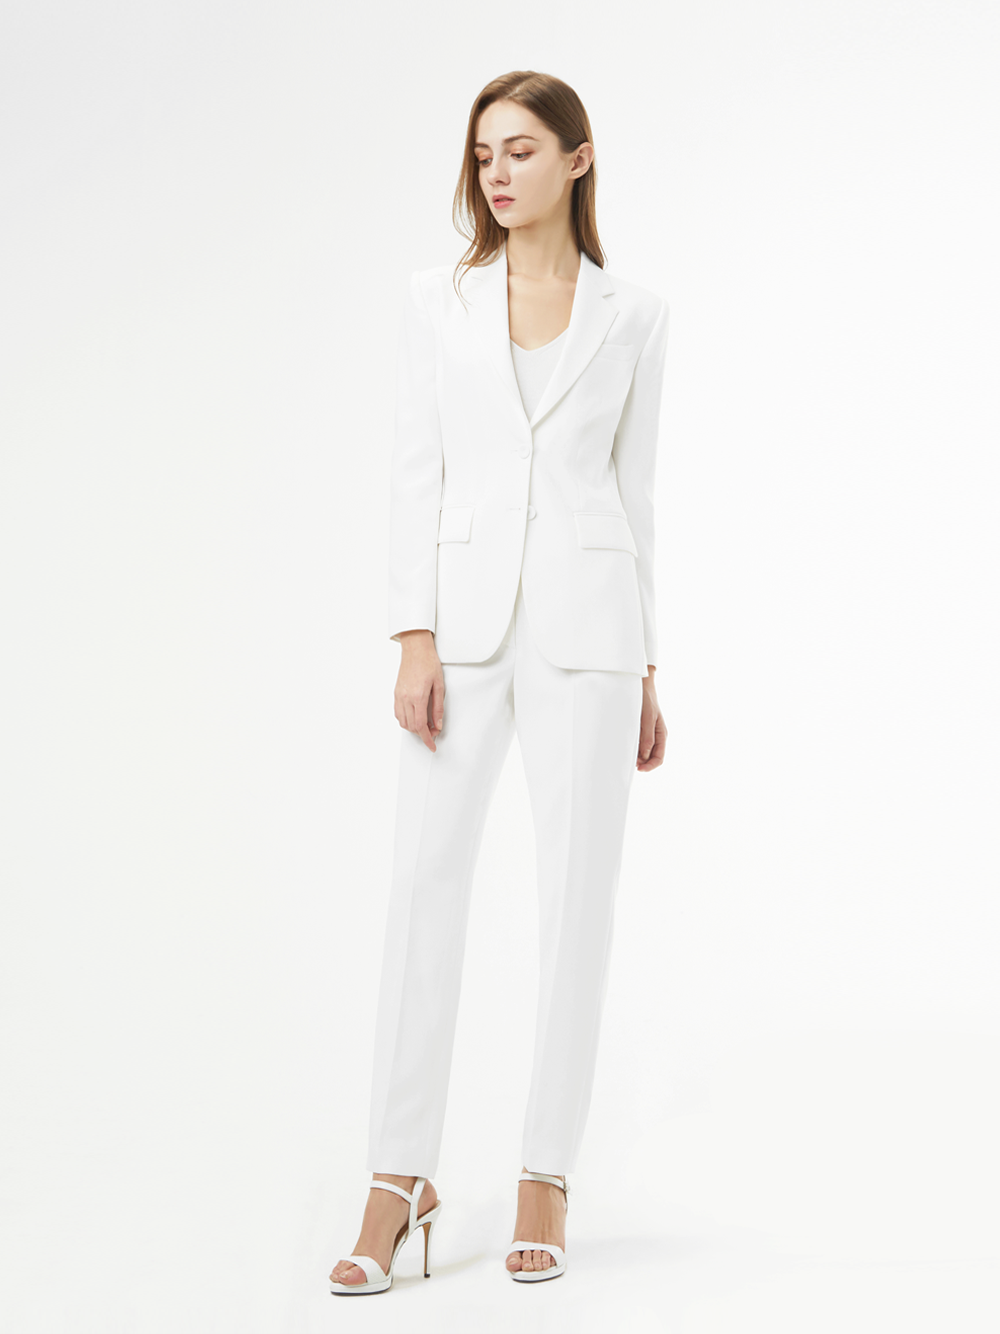 White SIngle Suit